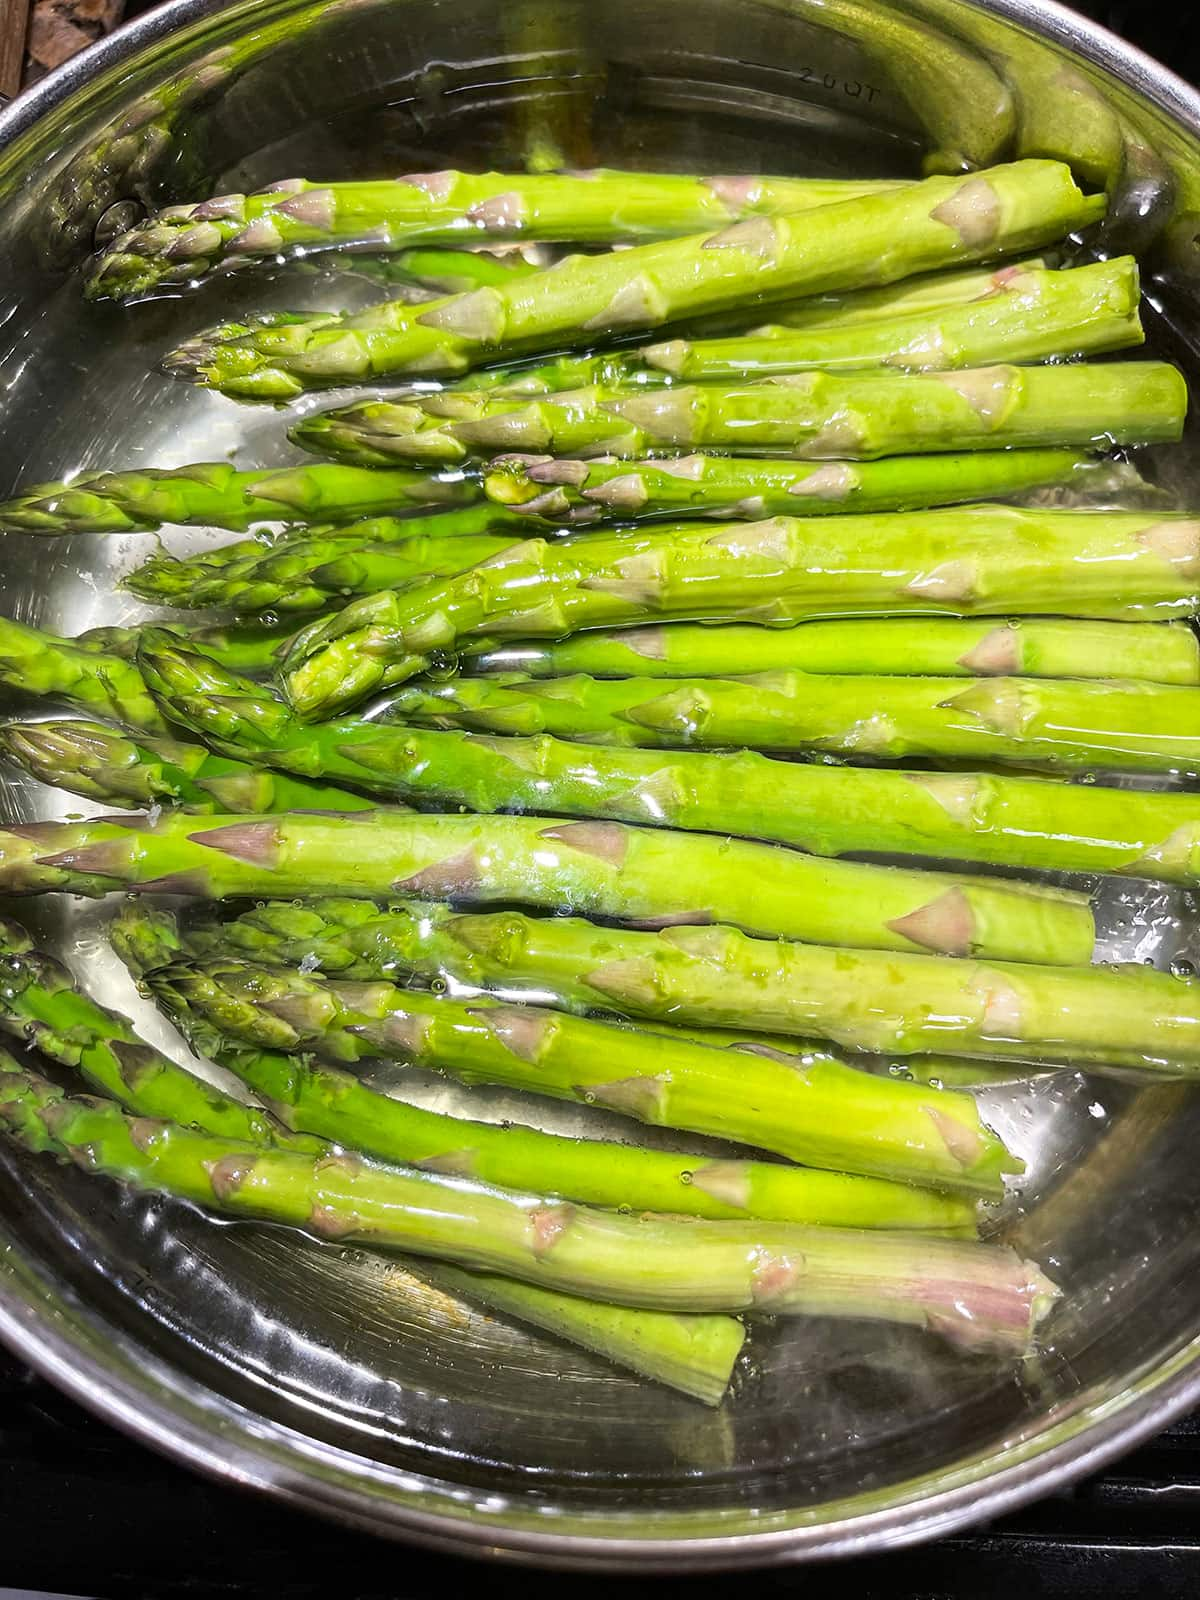 asparagus blanching in a saucepan of boiling water